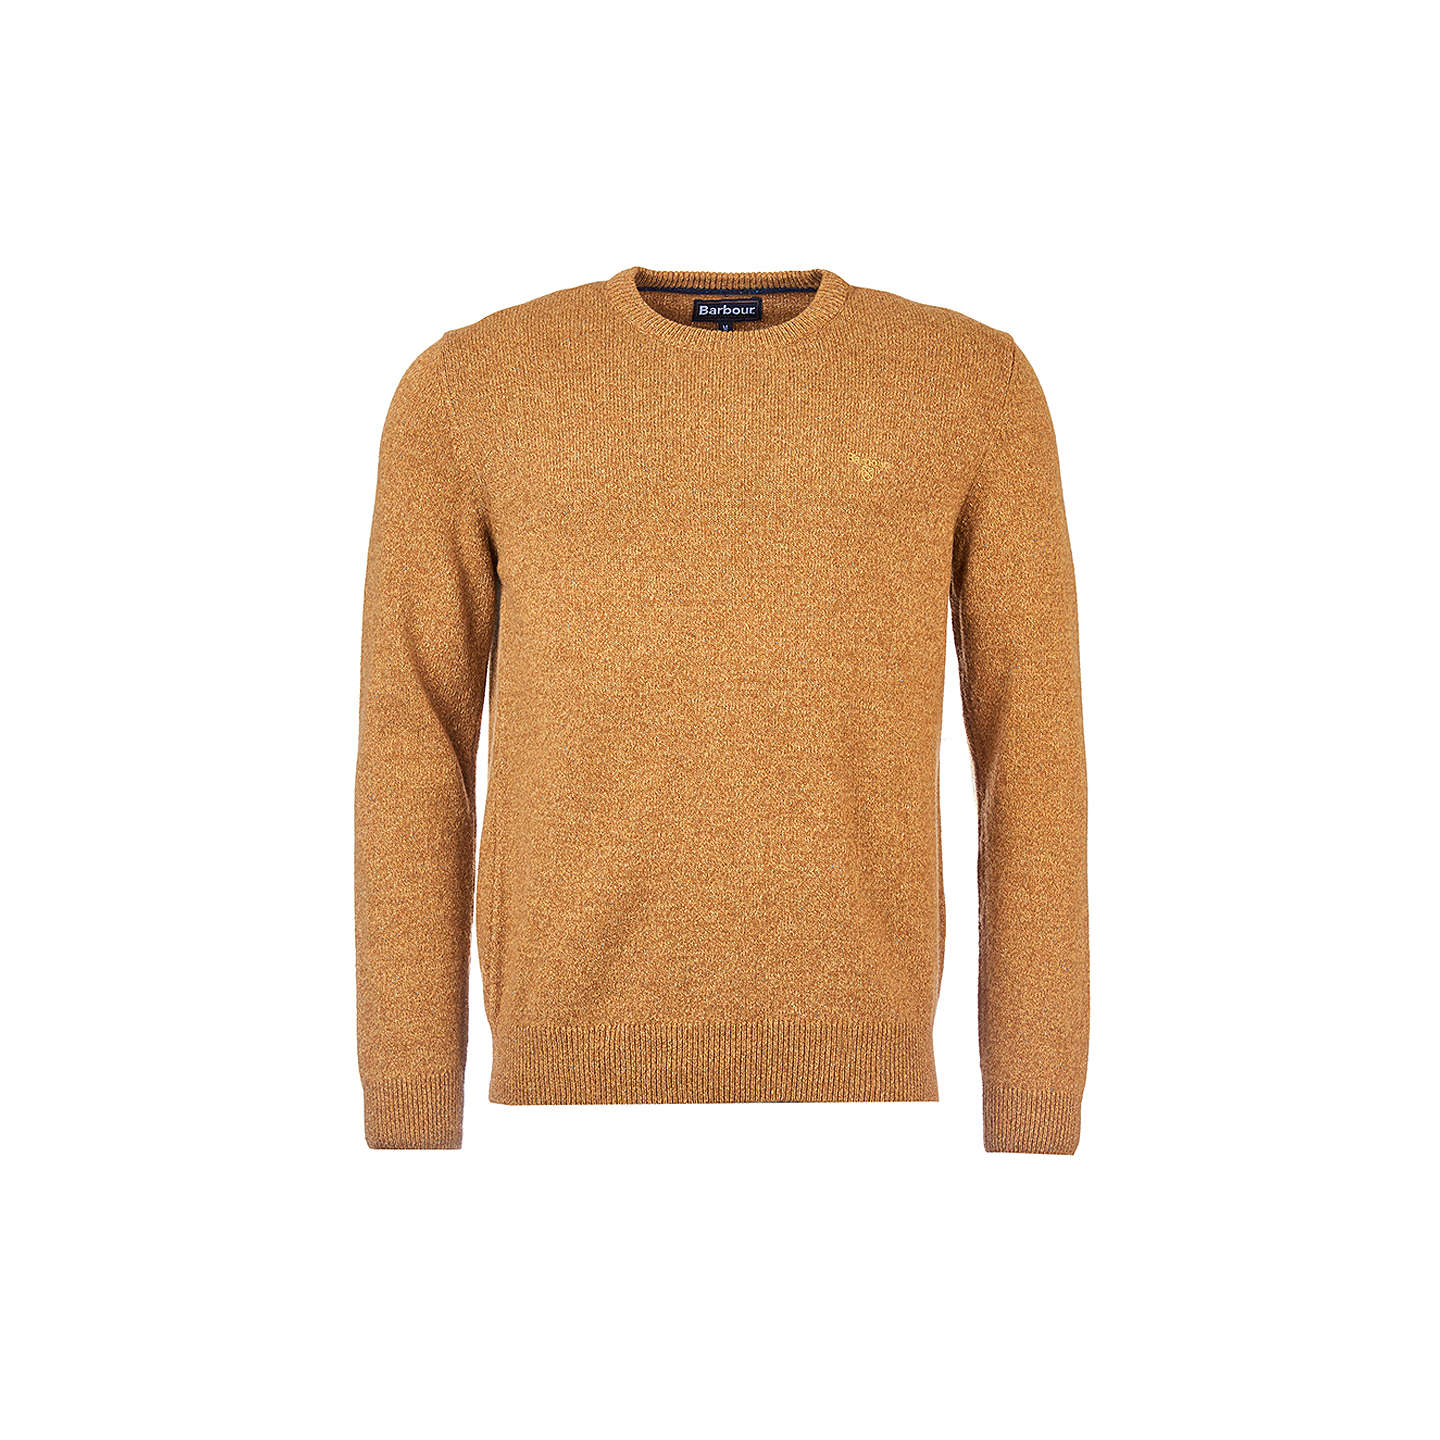 BuyBarbour Tisbury Lambswool Crew Neck Jumper, Copper, S Online at johnlewis.com